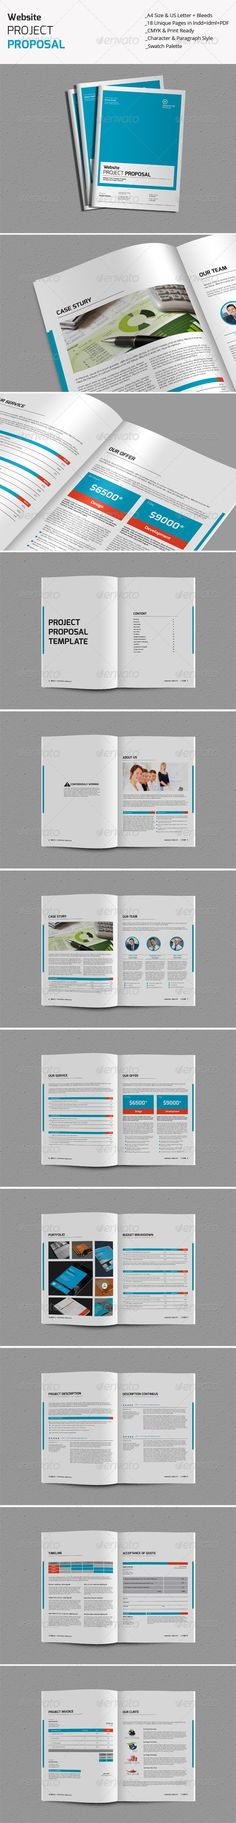 Web Design Proposal  Proposals Proposal Templates And Brochures